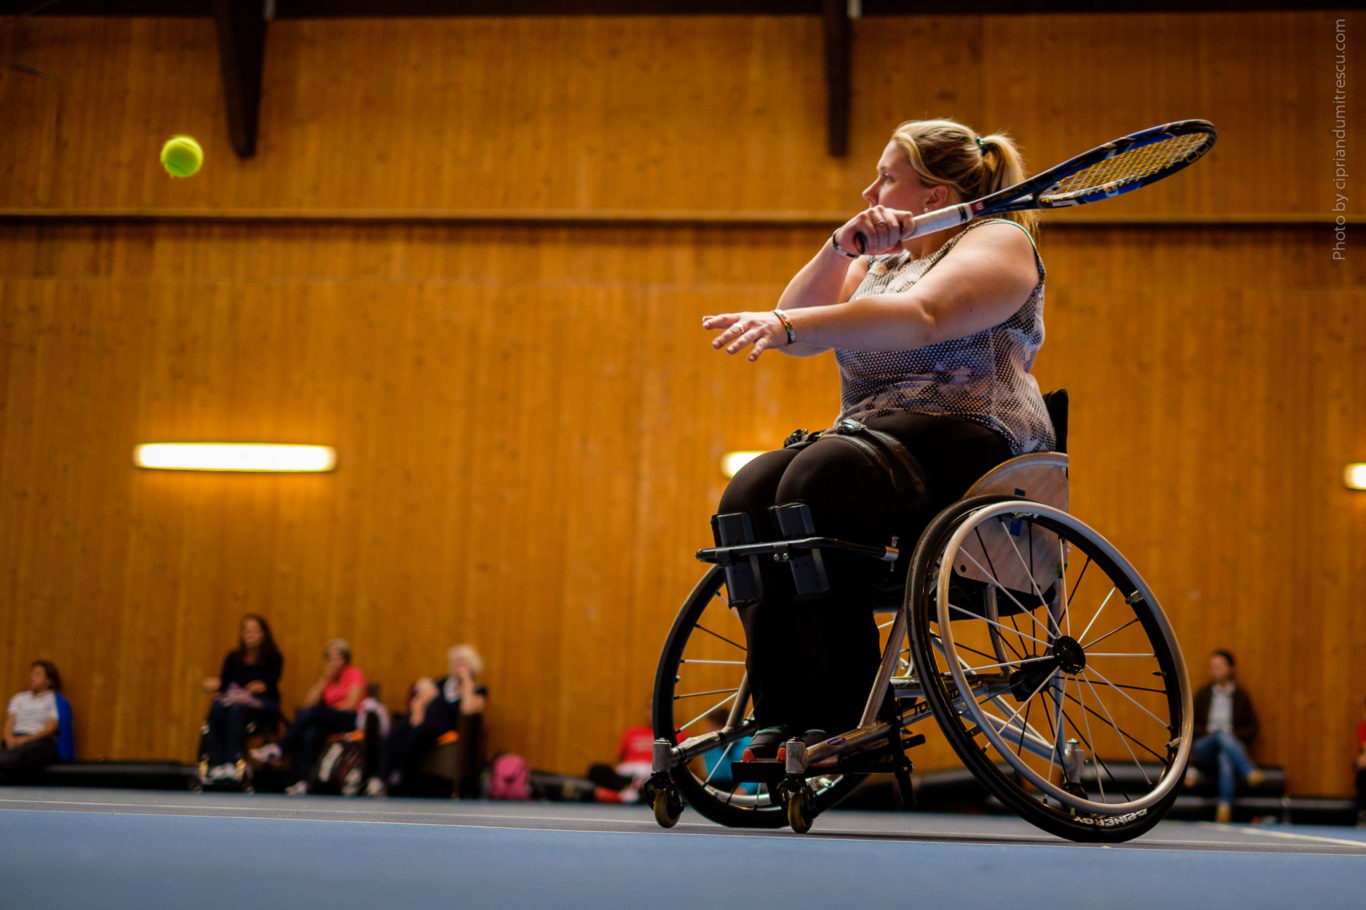 027-Bucharest-Open-Wheelchair-2016-Day-One-Photographer-Ciprian-Dumitrescu